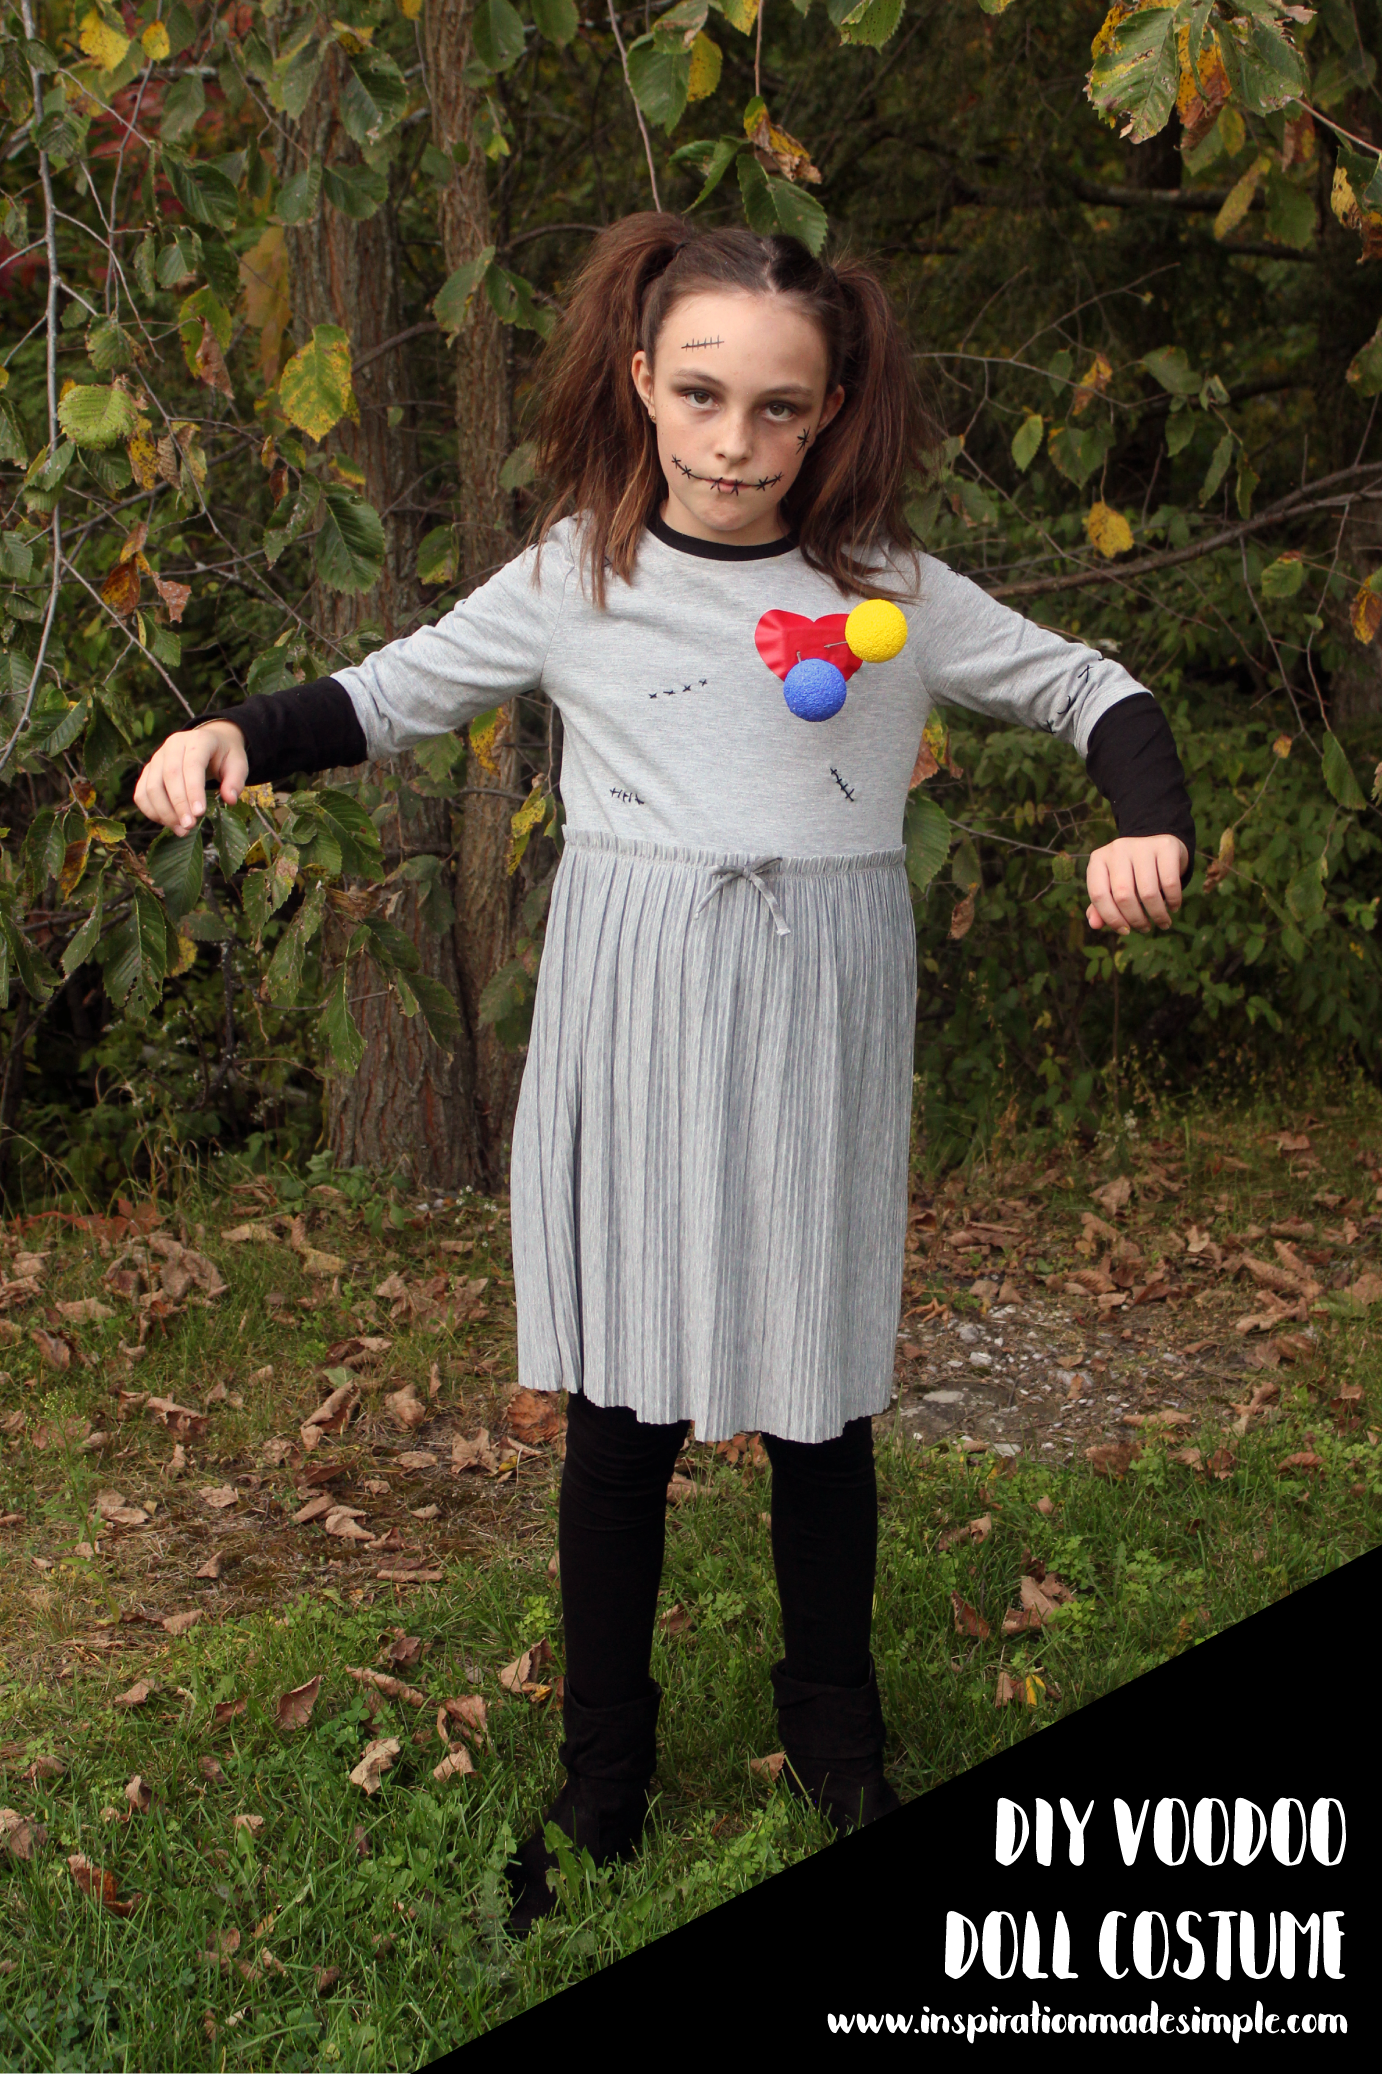 Simple DIY Voodoo Doll Halloween Costume